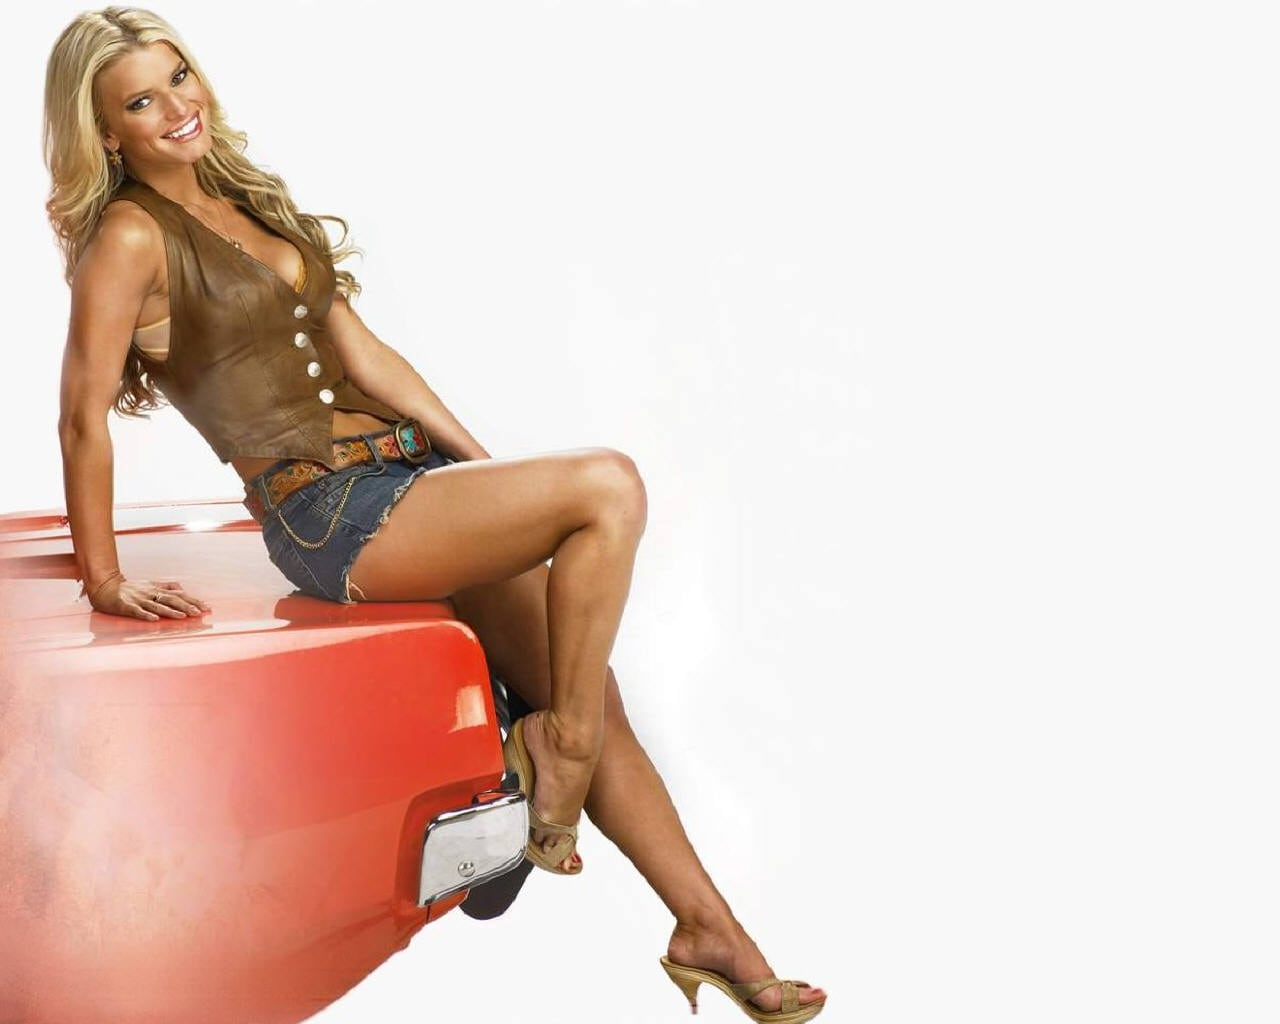 Jessica Simpson Wide wallpapers